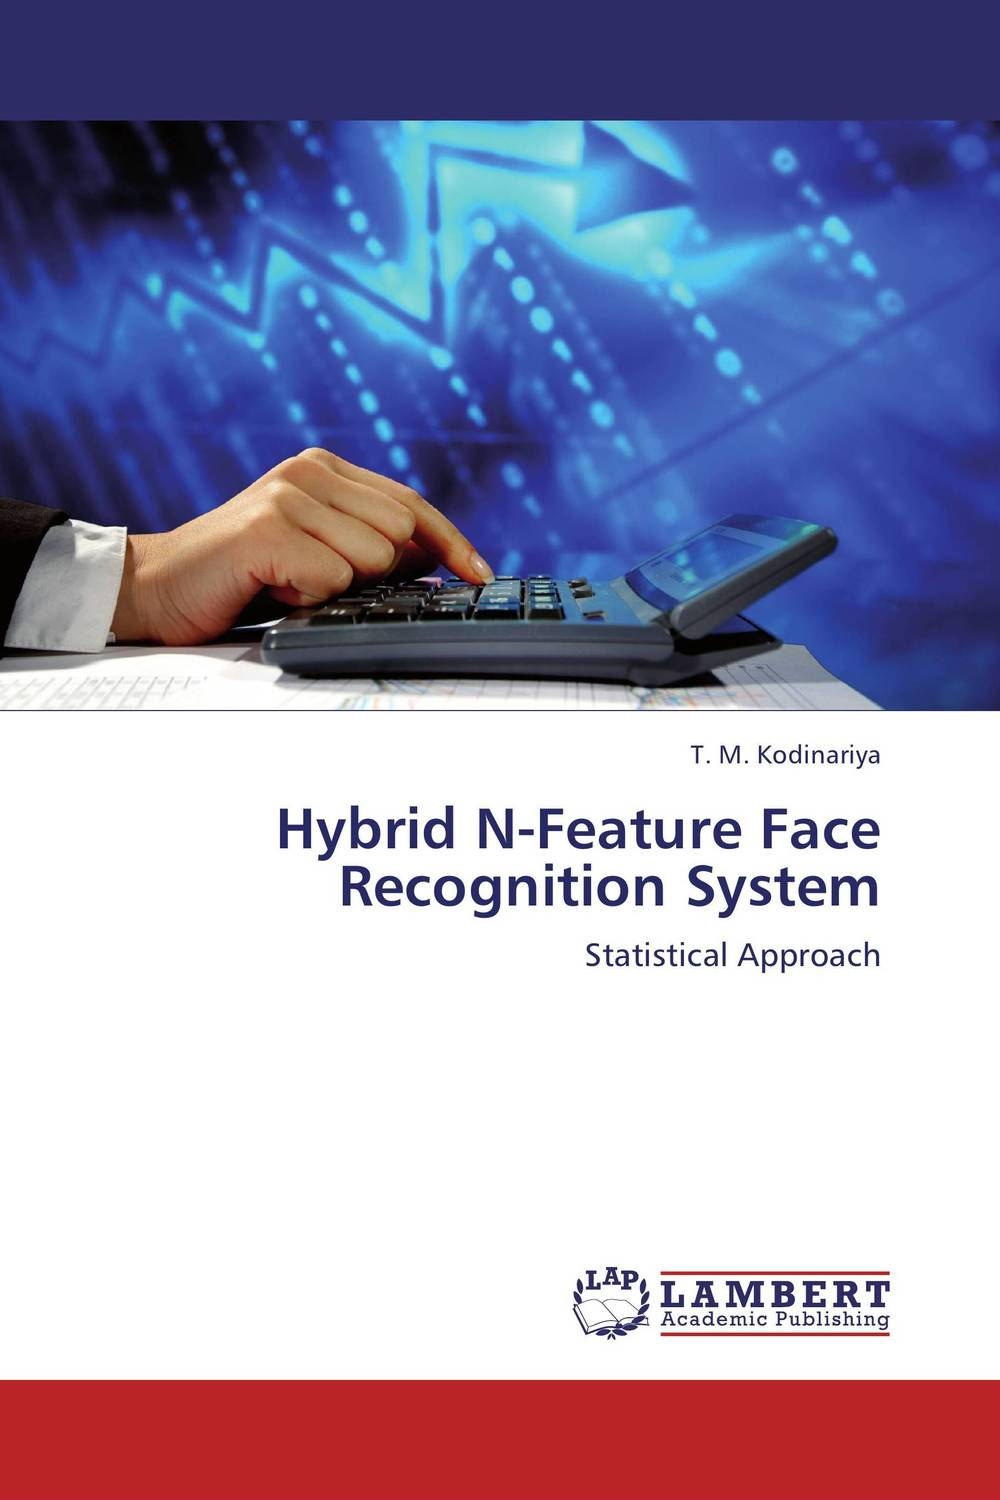 все цены на Hybrid N-Feature Face Recognition System онлайн